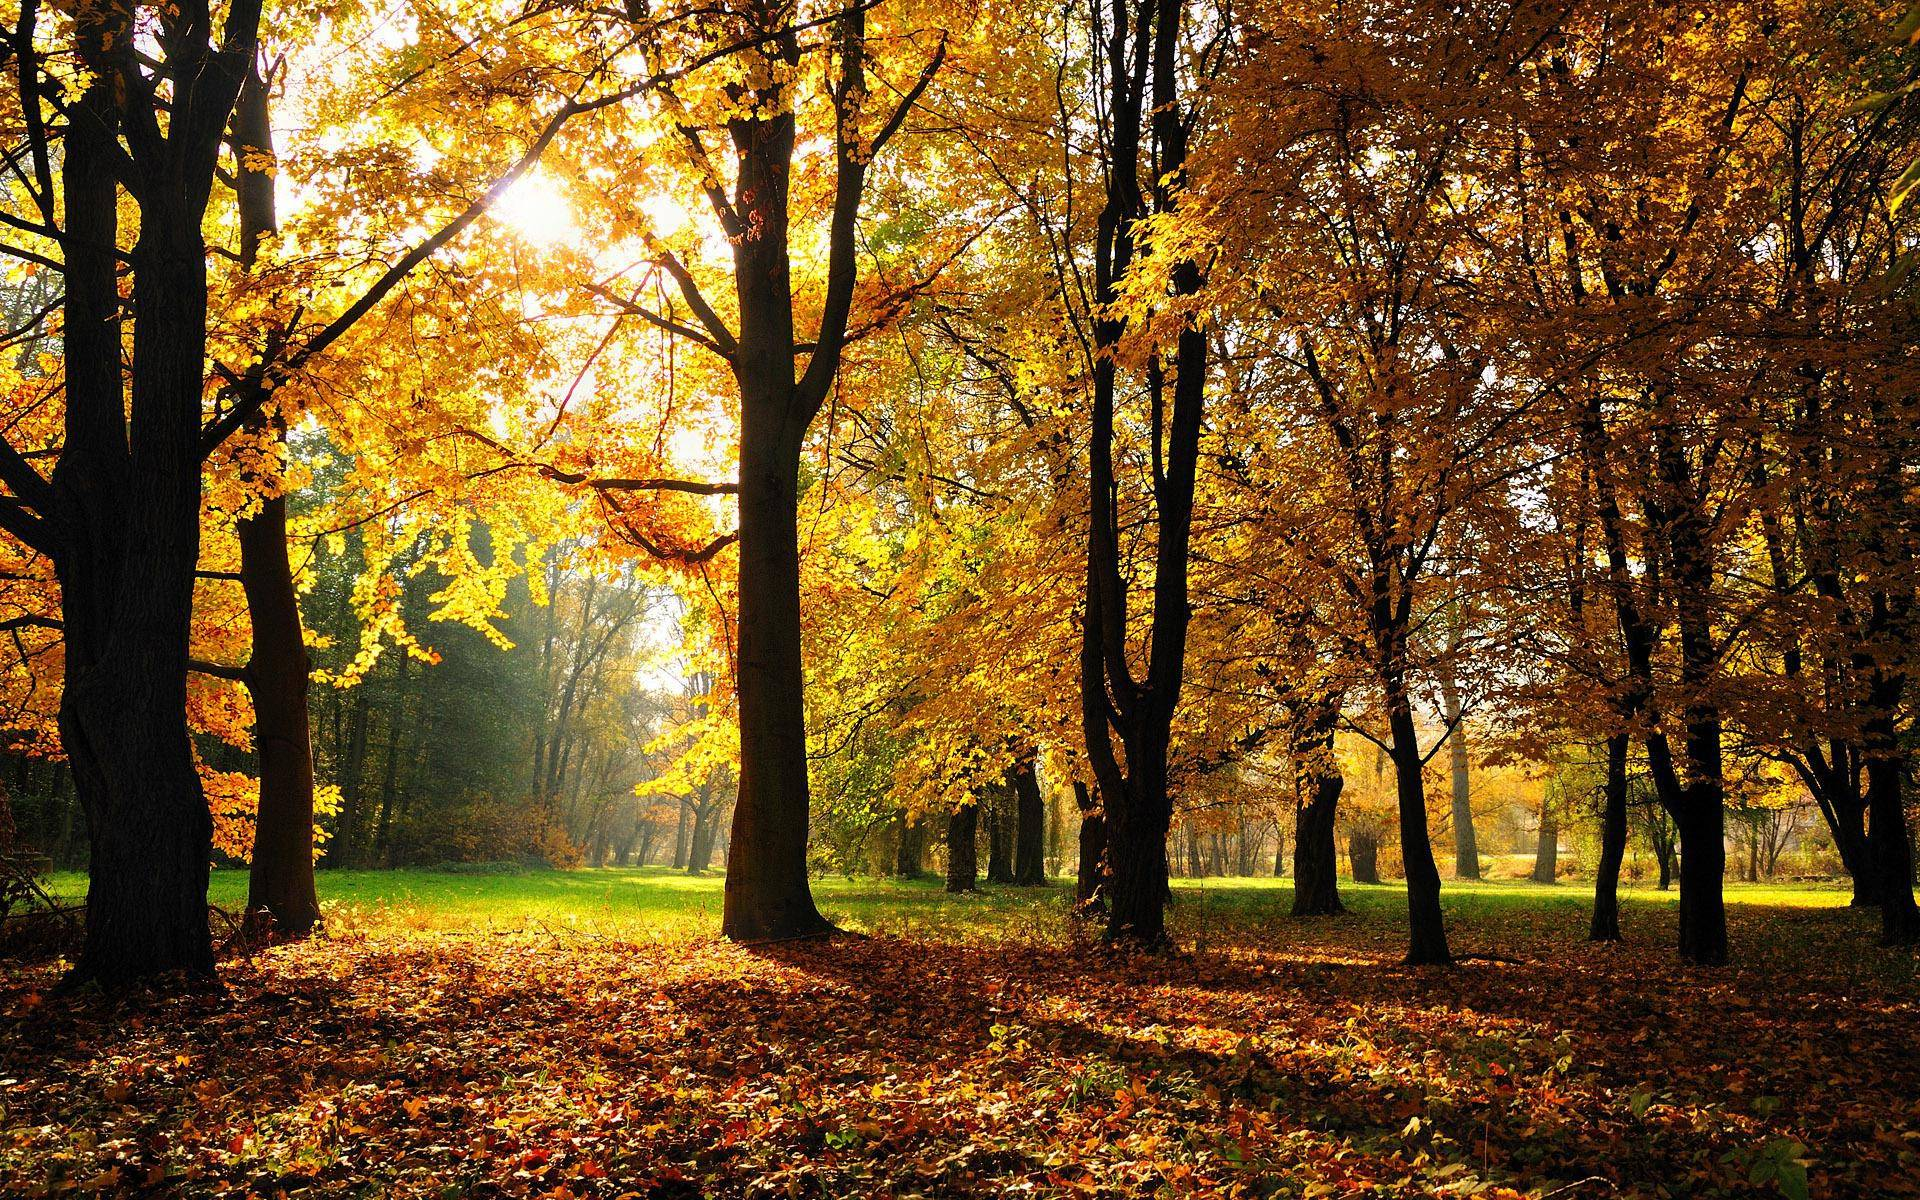 Dark Fall Android Wallpaper Autumn Backgrounds Wallpaper Cave